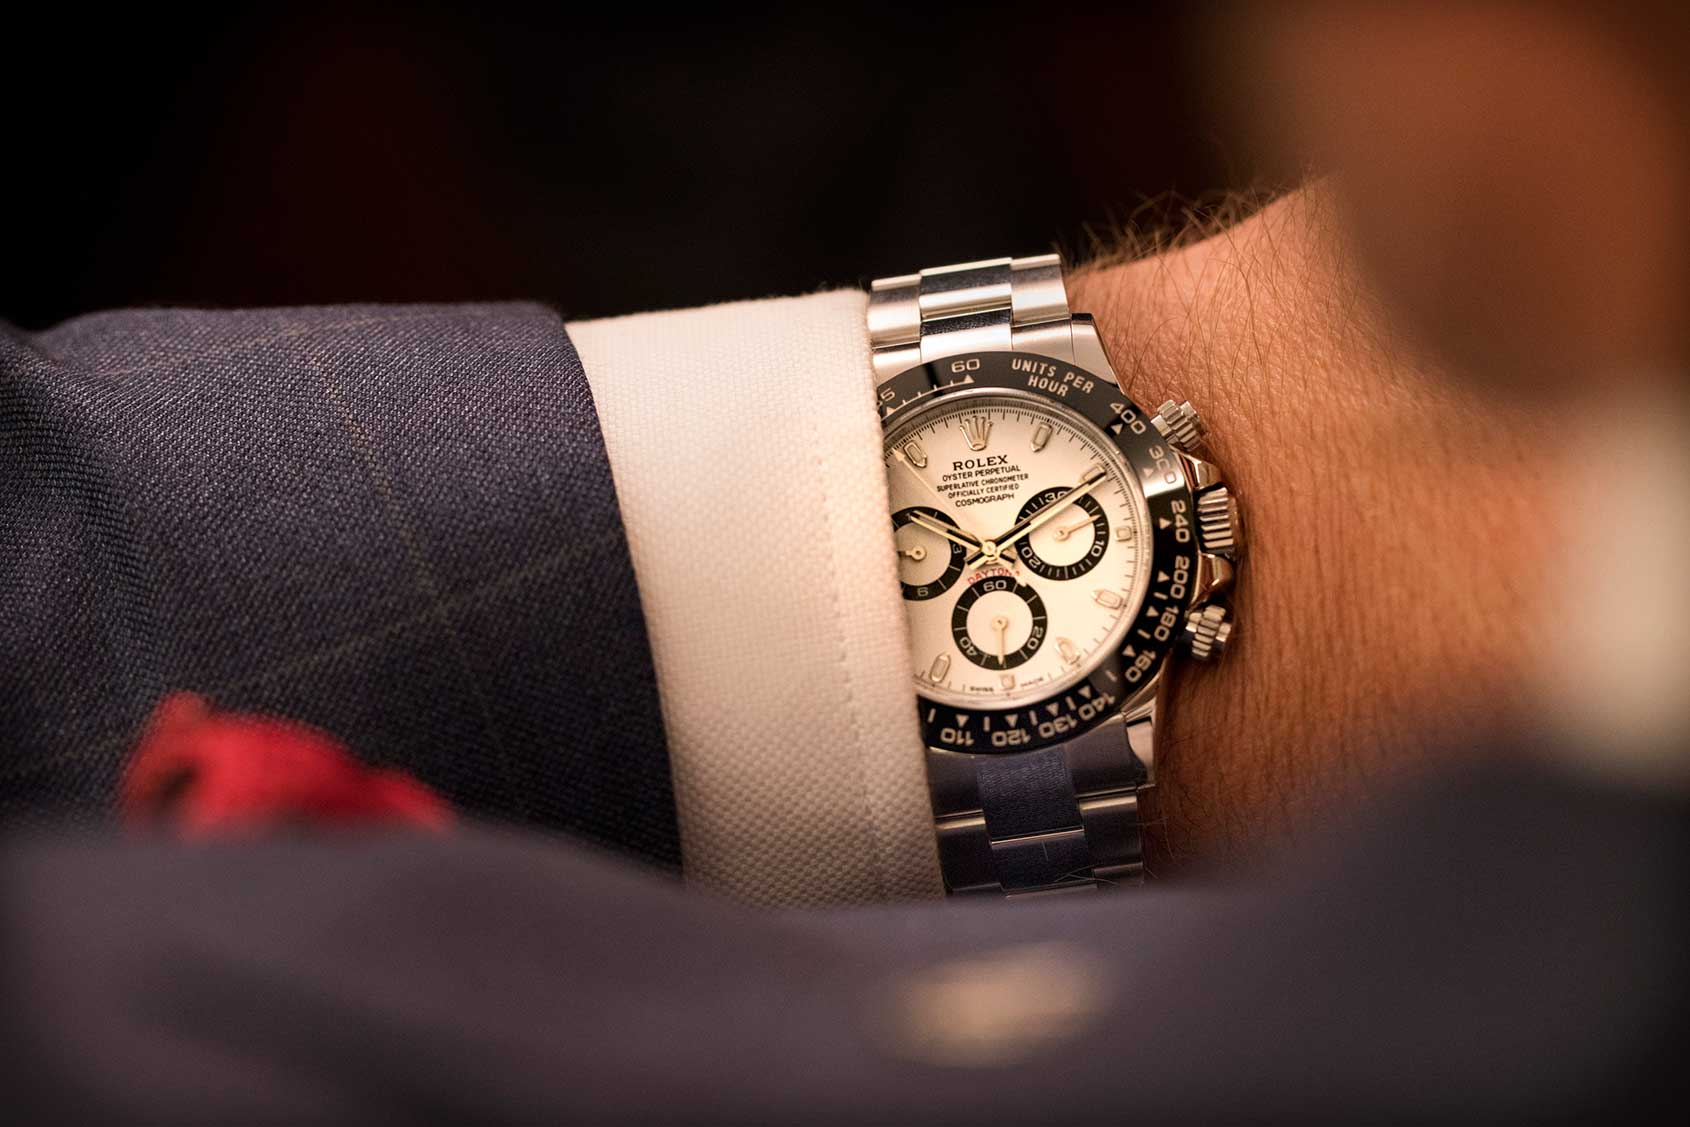 GONE IN 60 SECONDS: The Rolex Oyster Perpetual Cosmograph Daytona (Ref 116500 LN), the must watch video review